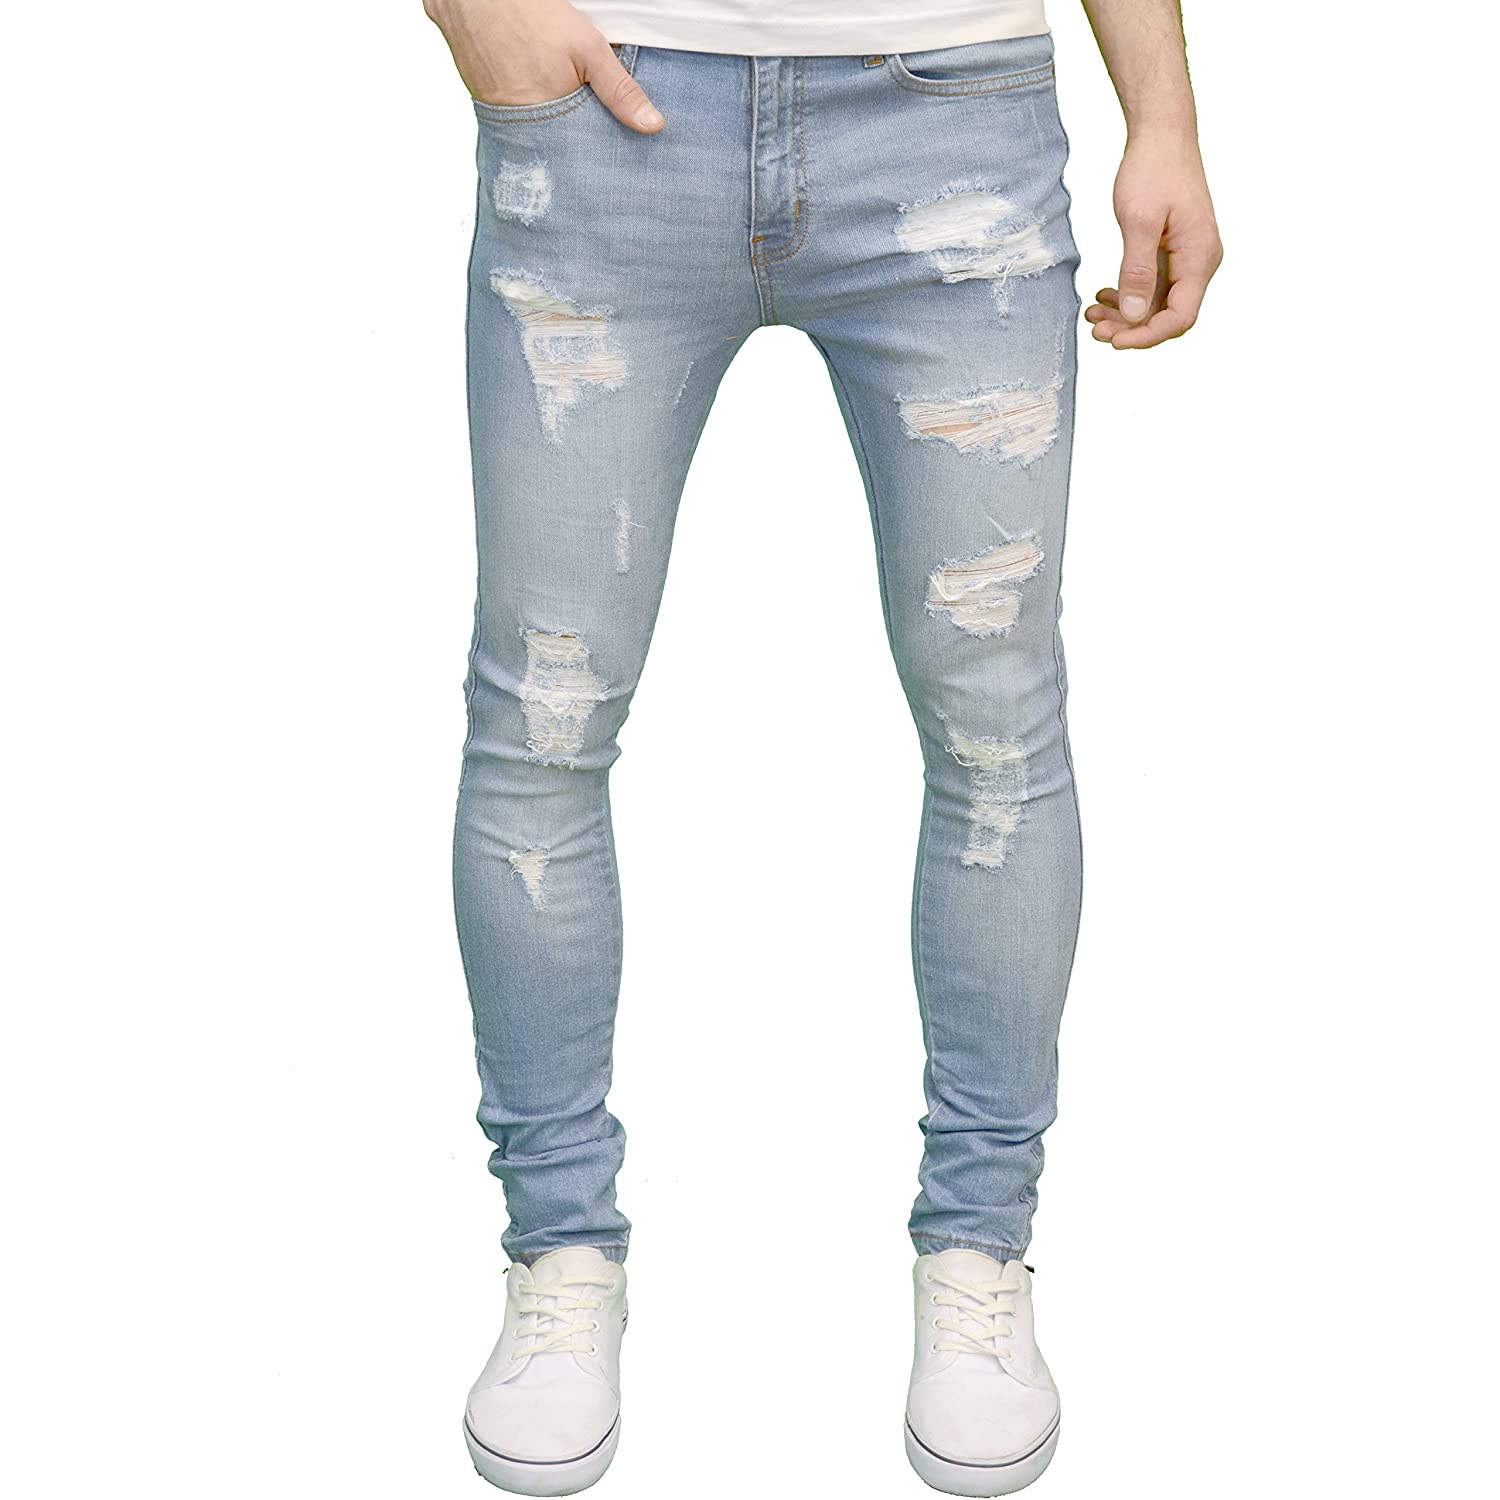 526Jeanswear 526 Mens Designer Stretch Super Skinny Ripped Abraised Distressed Jeans